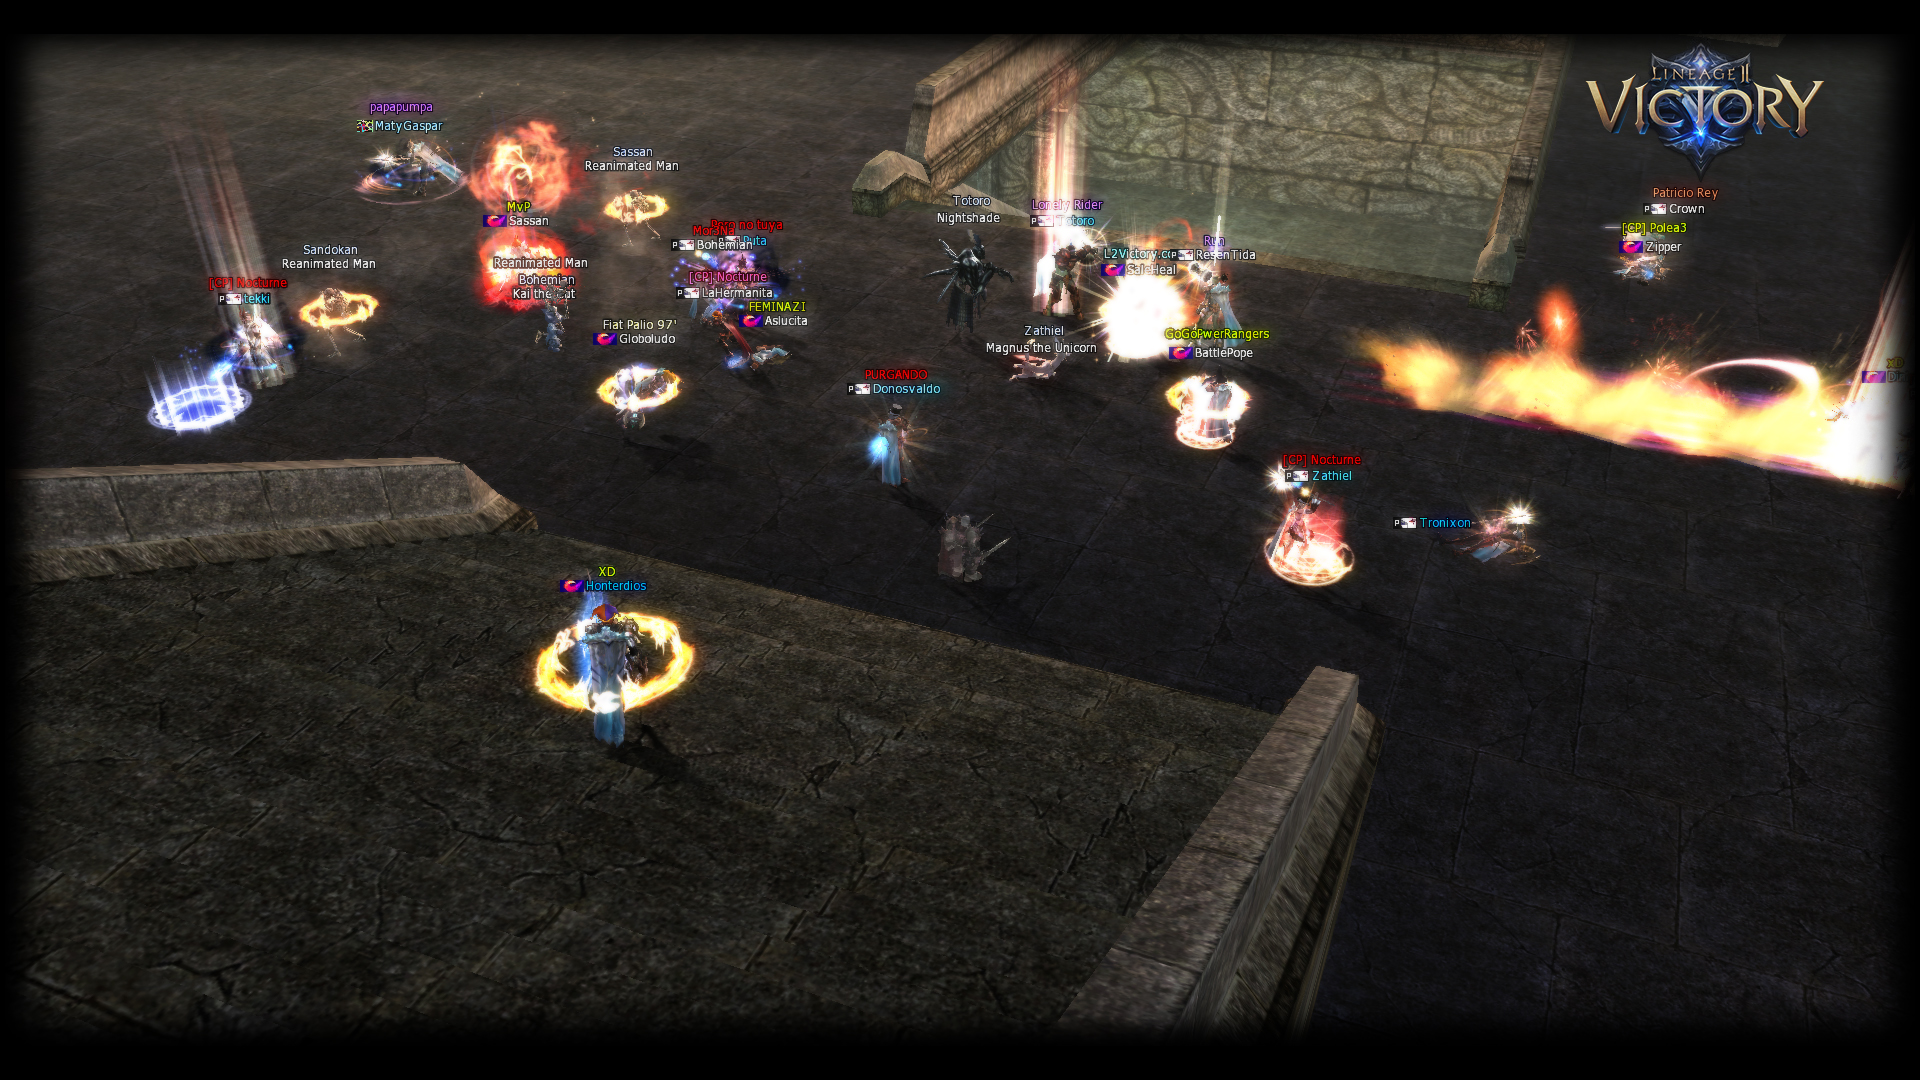 Lineage 2 Victory